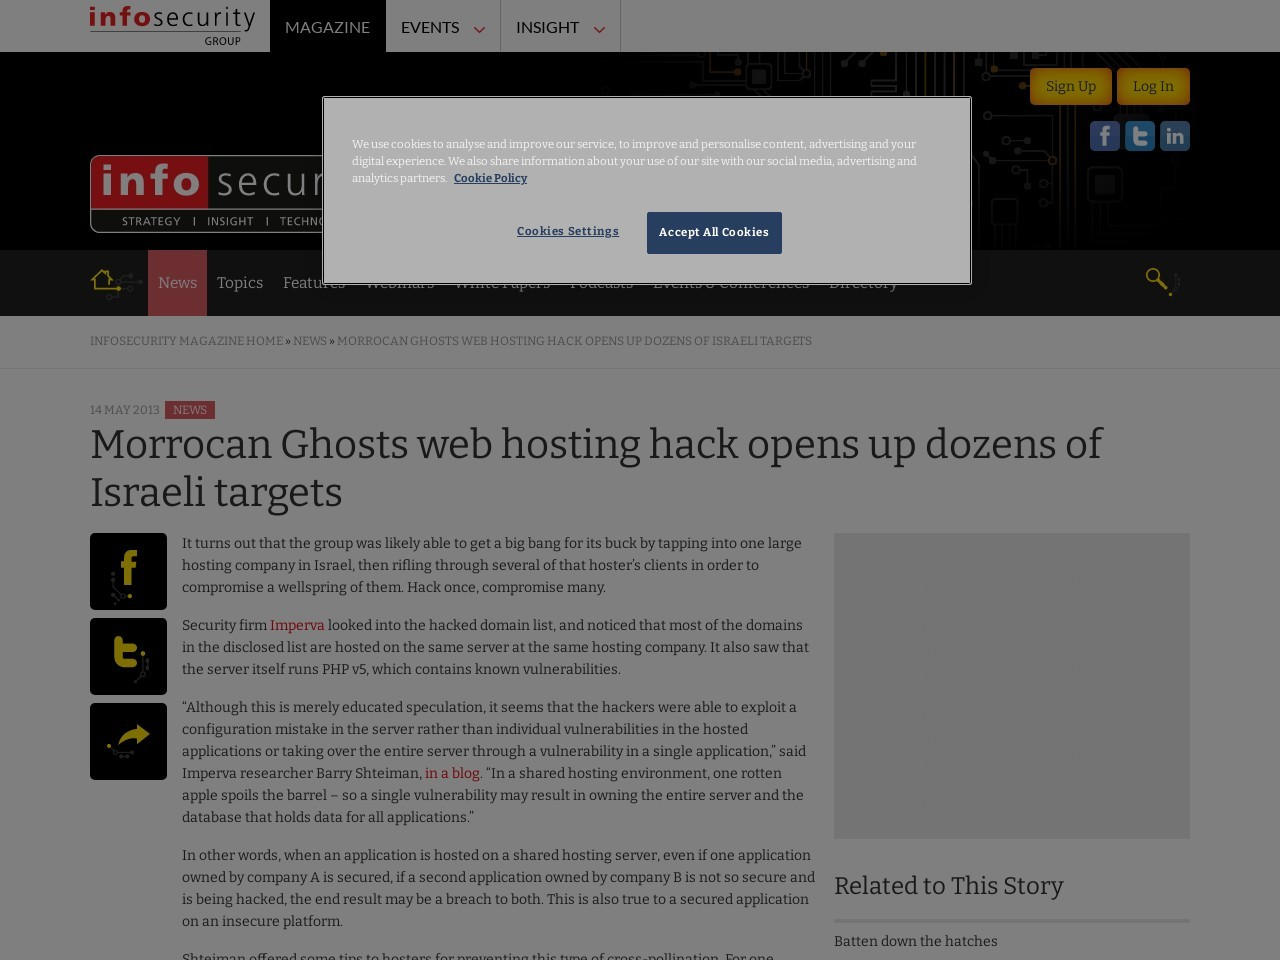 Morrocan Ghosts web hosting hack opens up dozens of Israeli targets